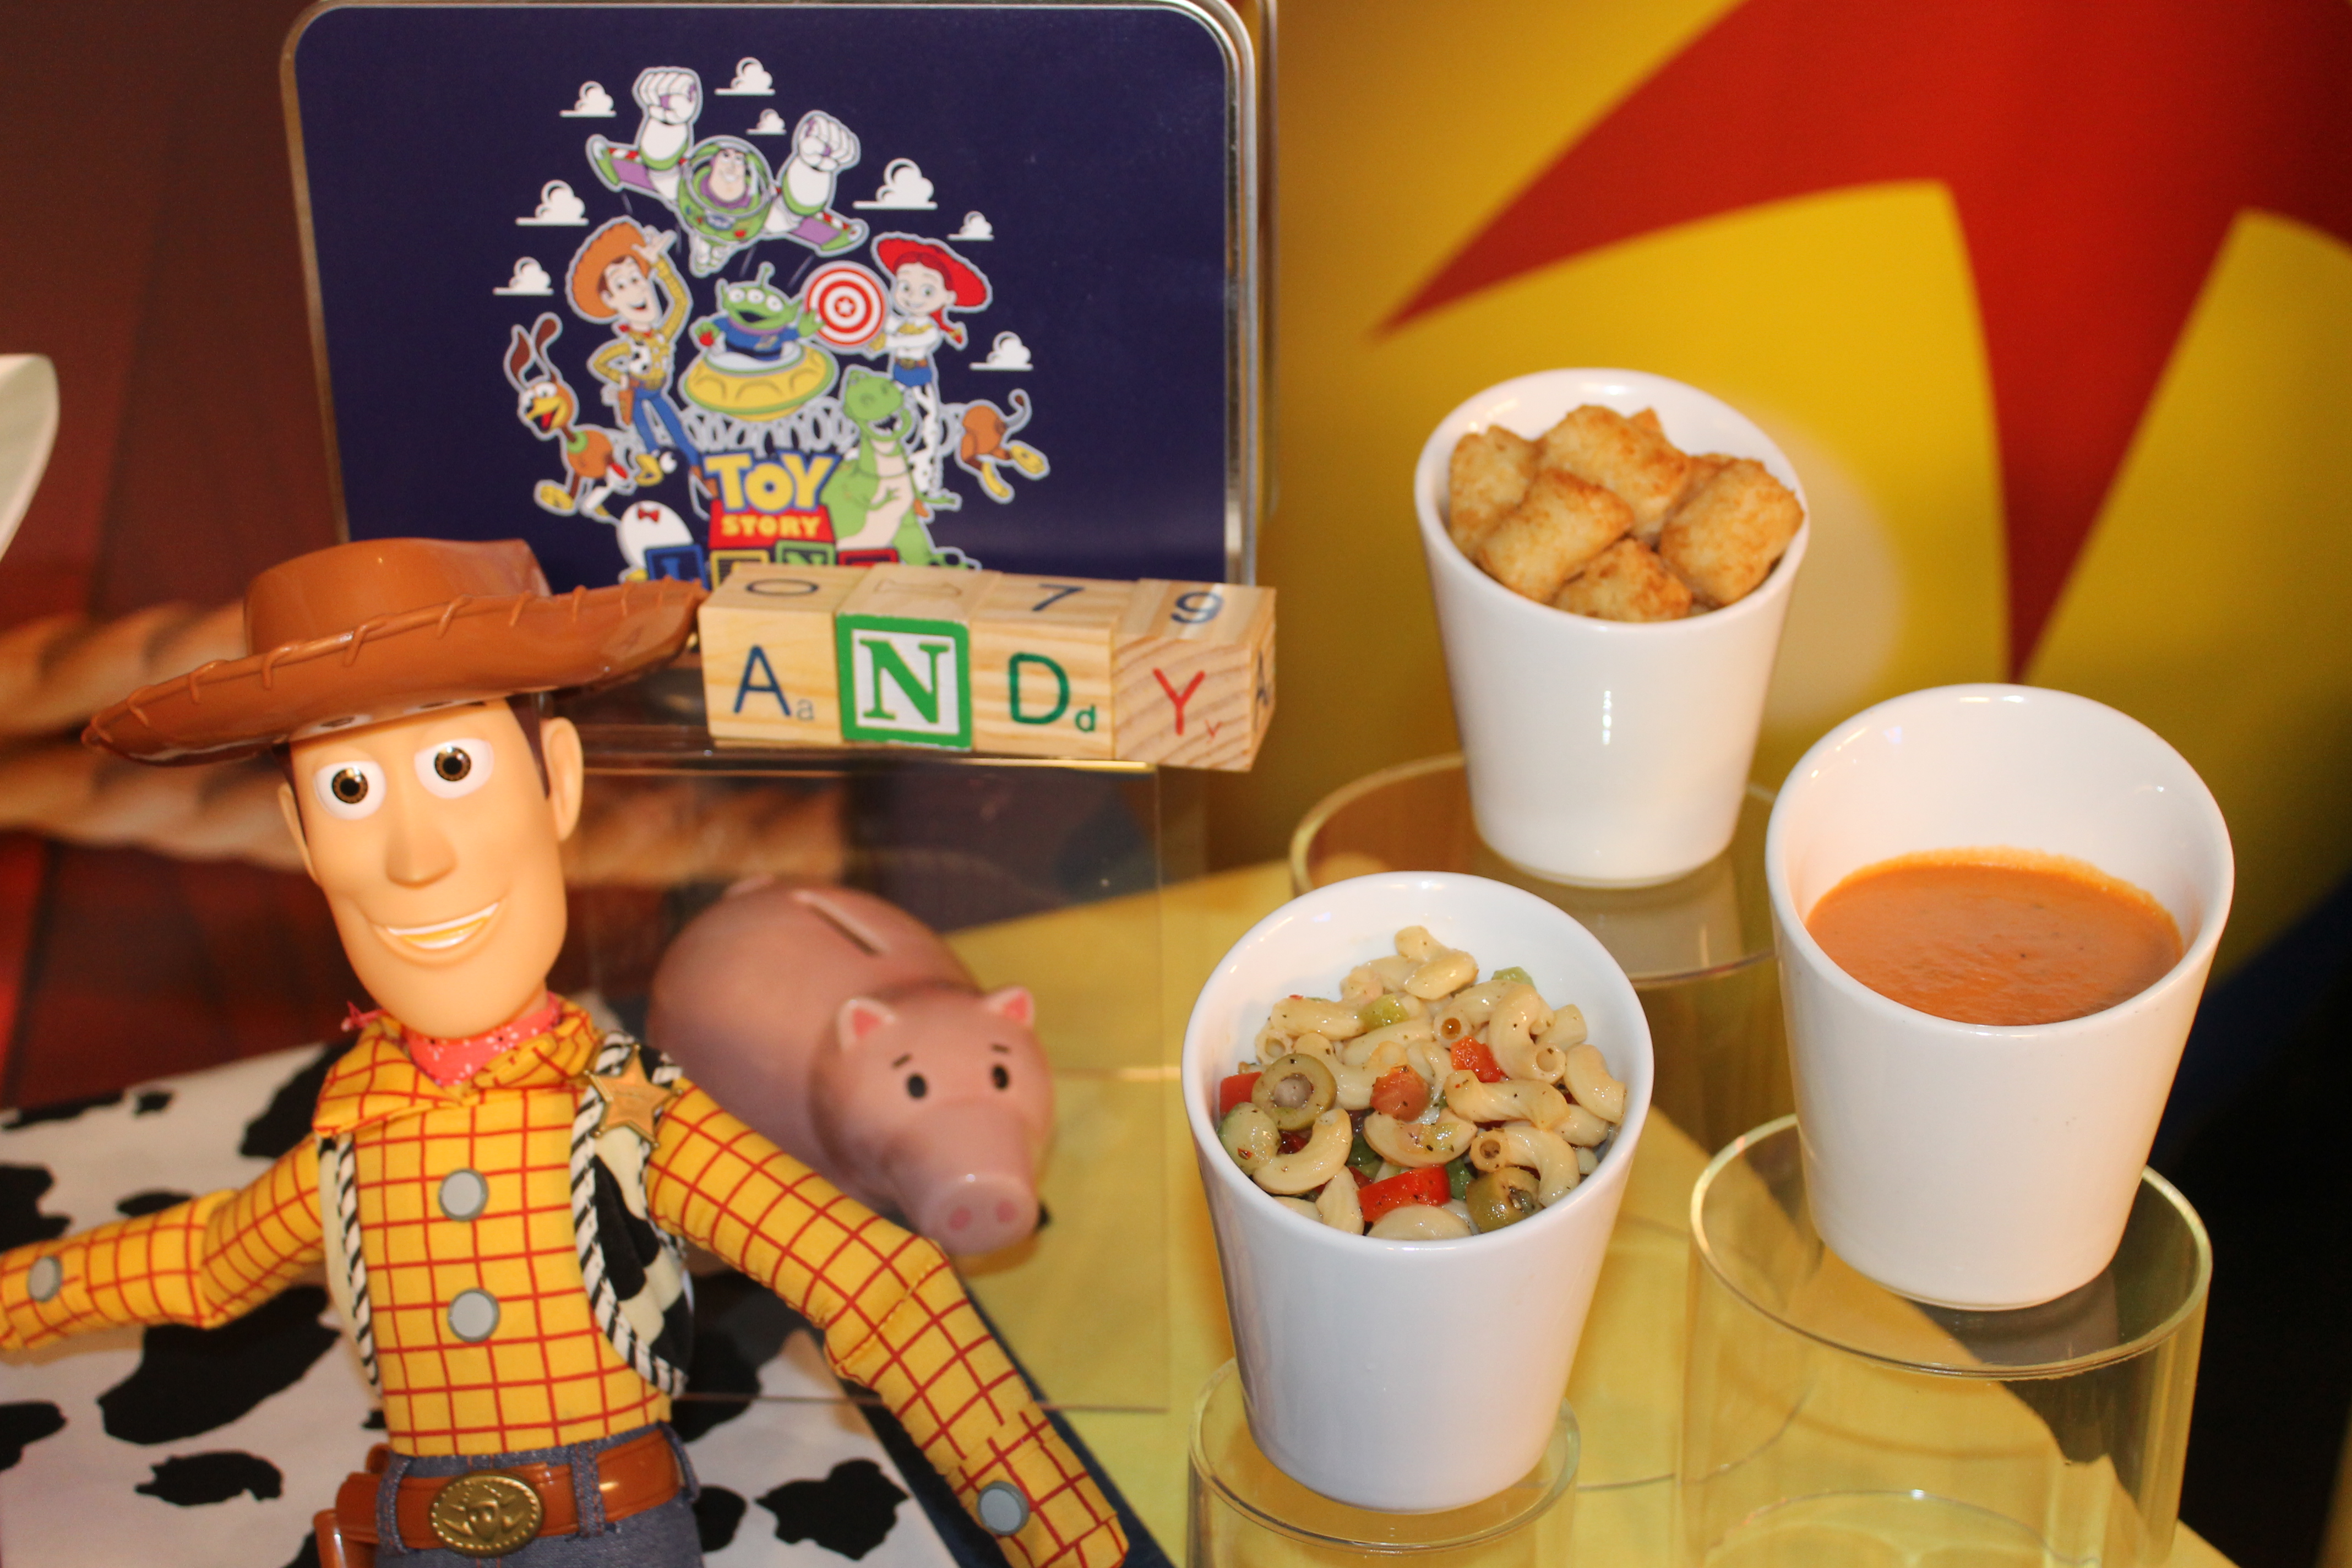 Toy Story land food